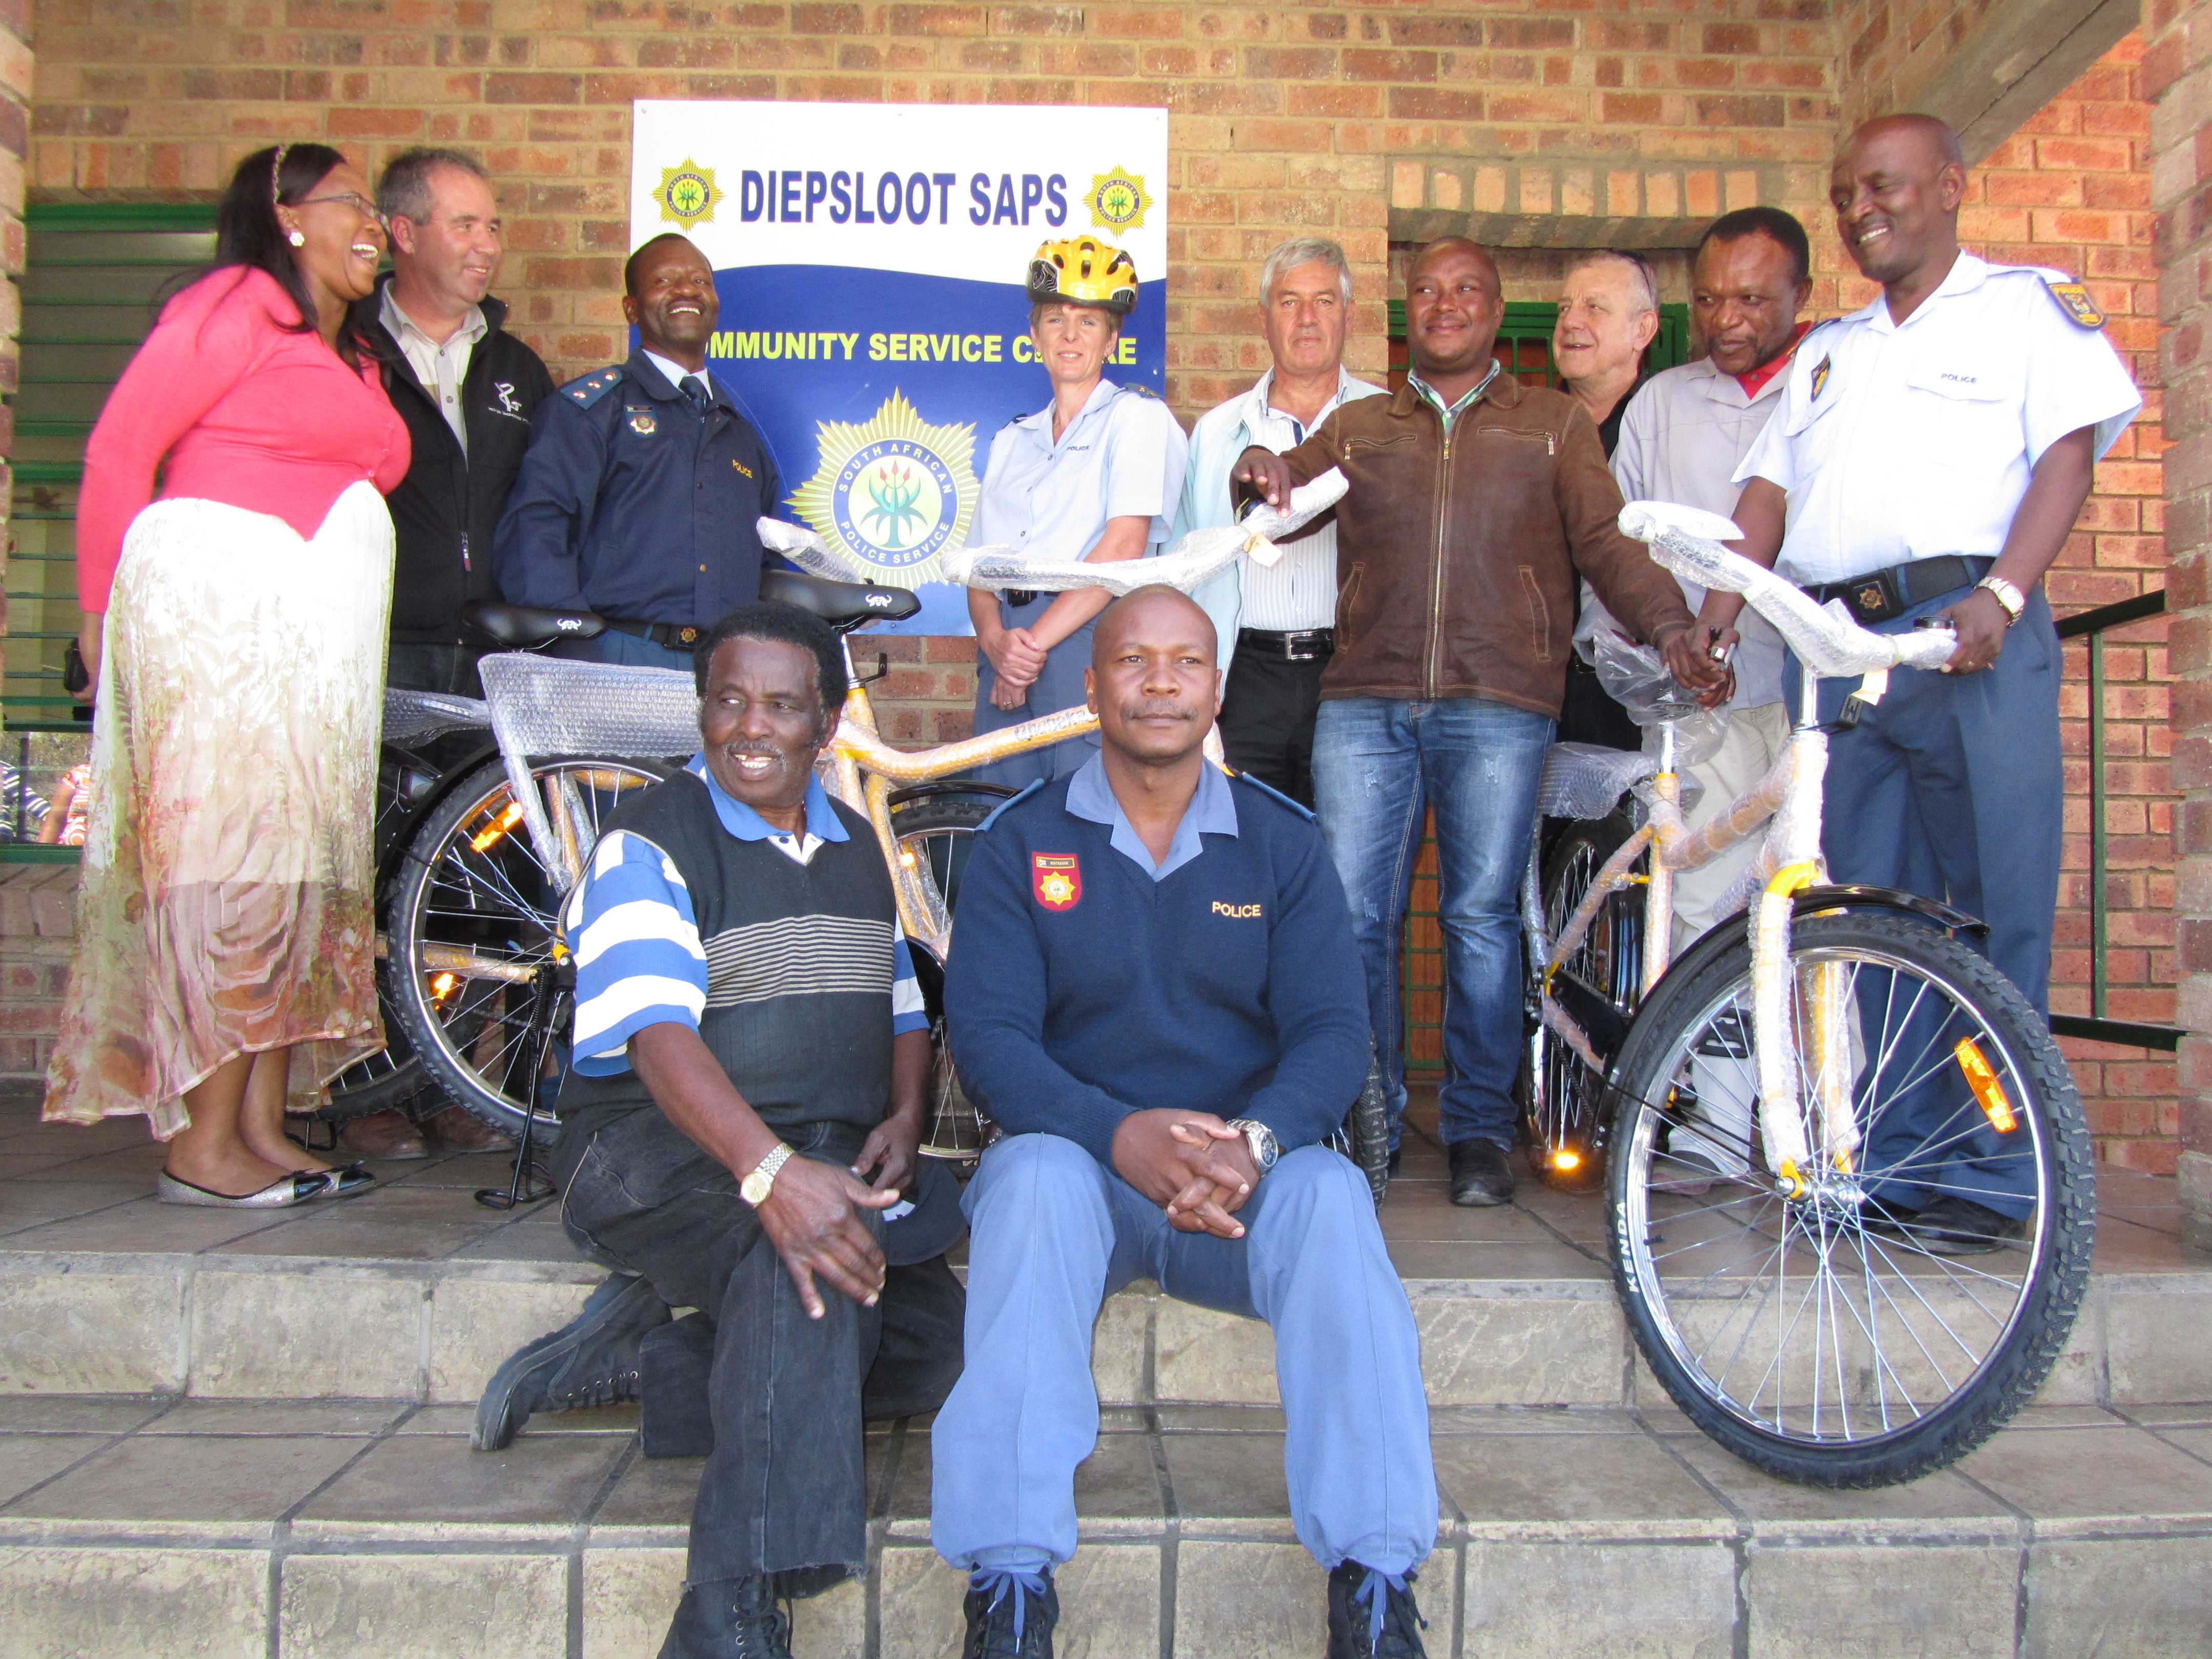 Attending the handover of the bicycles were (back from left) Lt.Col. Mkhaliphi, Pastor Willem Lindeque, Col. Balatse, Lt.Col. Serfontein, Reg Bernstein General Manager of the DHA, Peter Motatjane of the Diepsloot CPF, Giovanni Mottalini of Qhubeka Bicycles, James Mkansi and Warrant Officer Segoe. (seated front) Deputy Chairperson of the Diepsloot CPF Mr N.Legodi and Capt. Matabane.